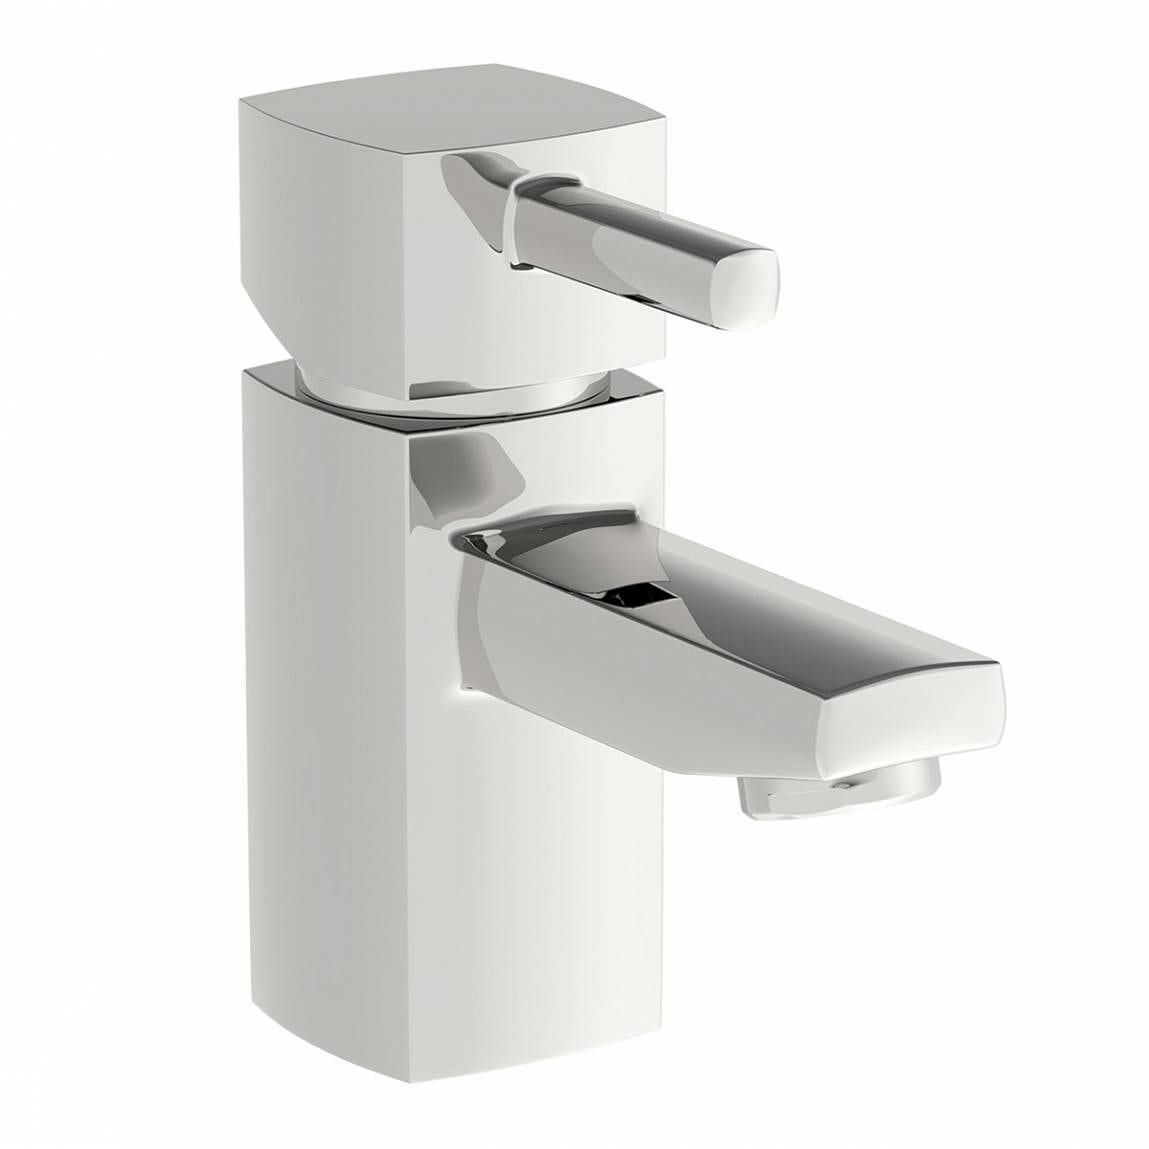 Orchard Derwent cloakroom basin mixer tap